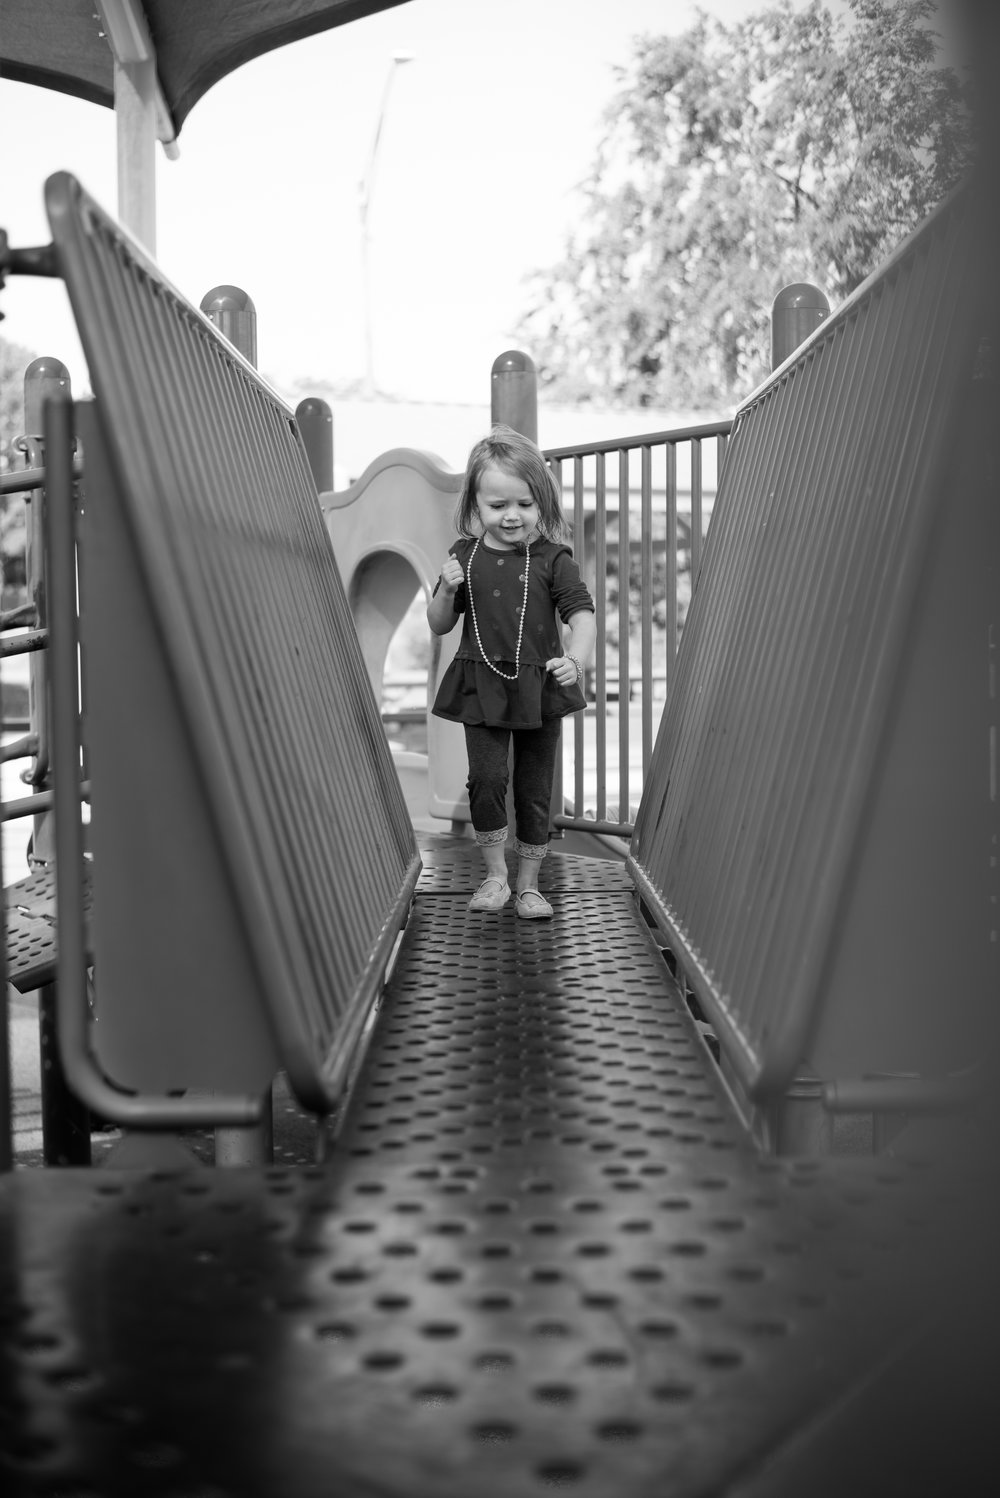 determined, brave, playground fun